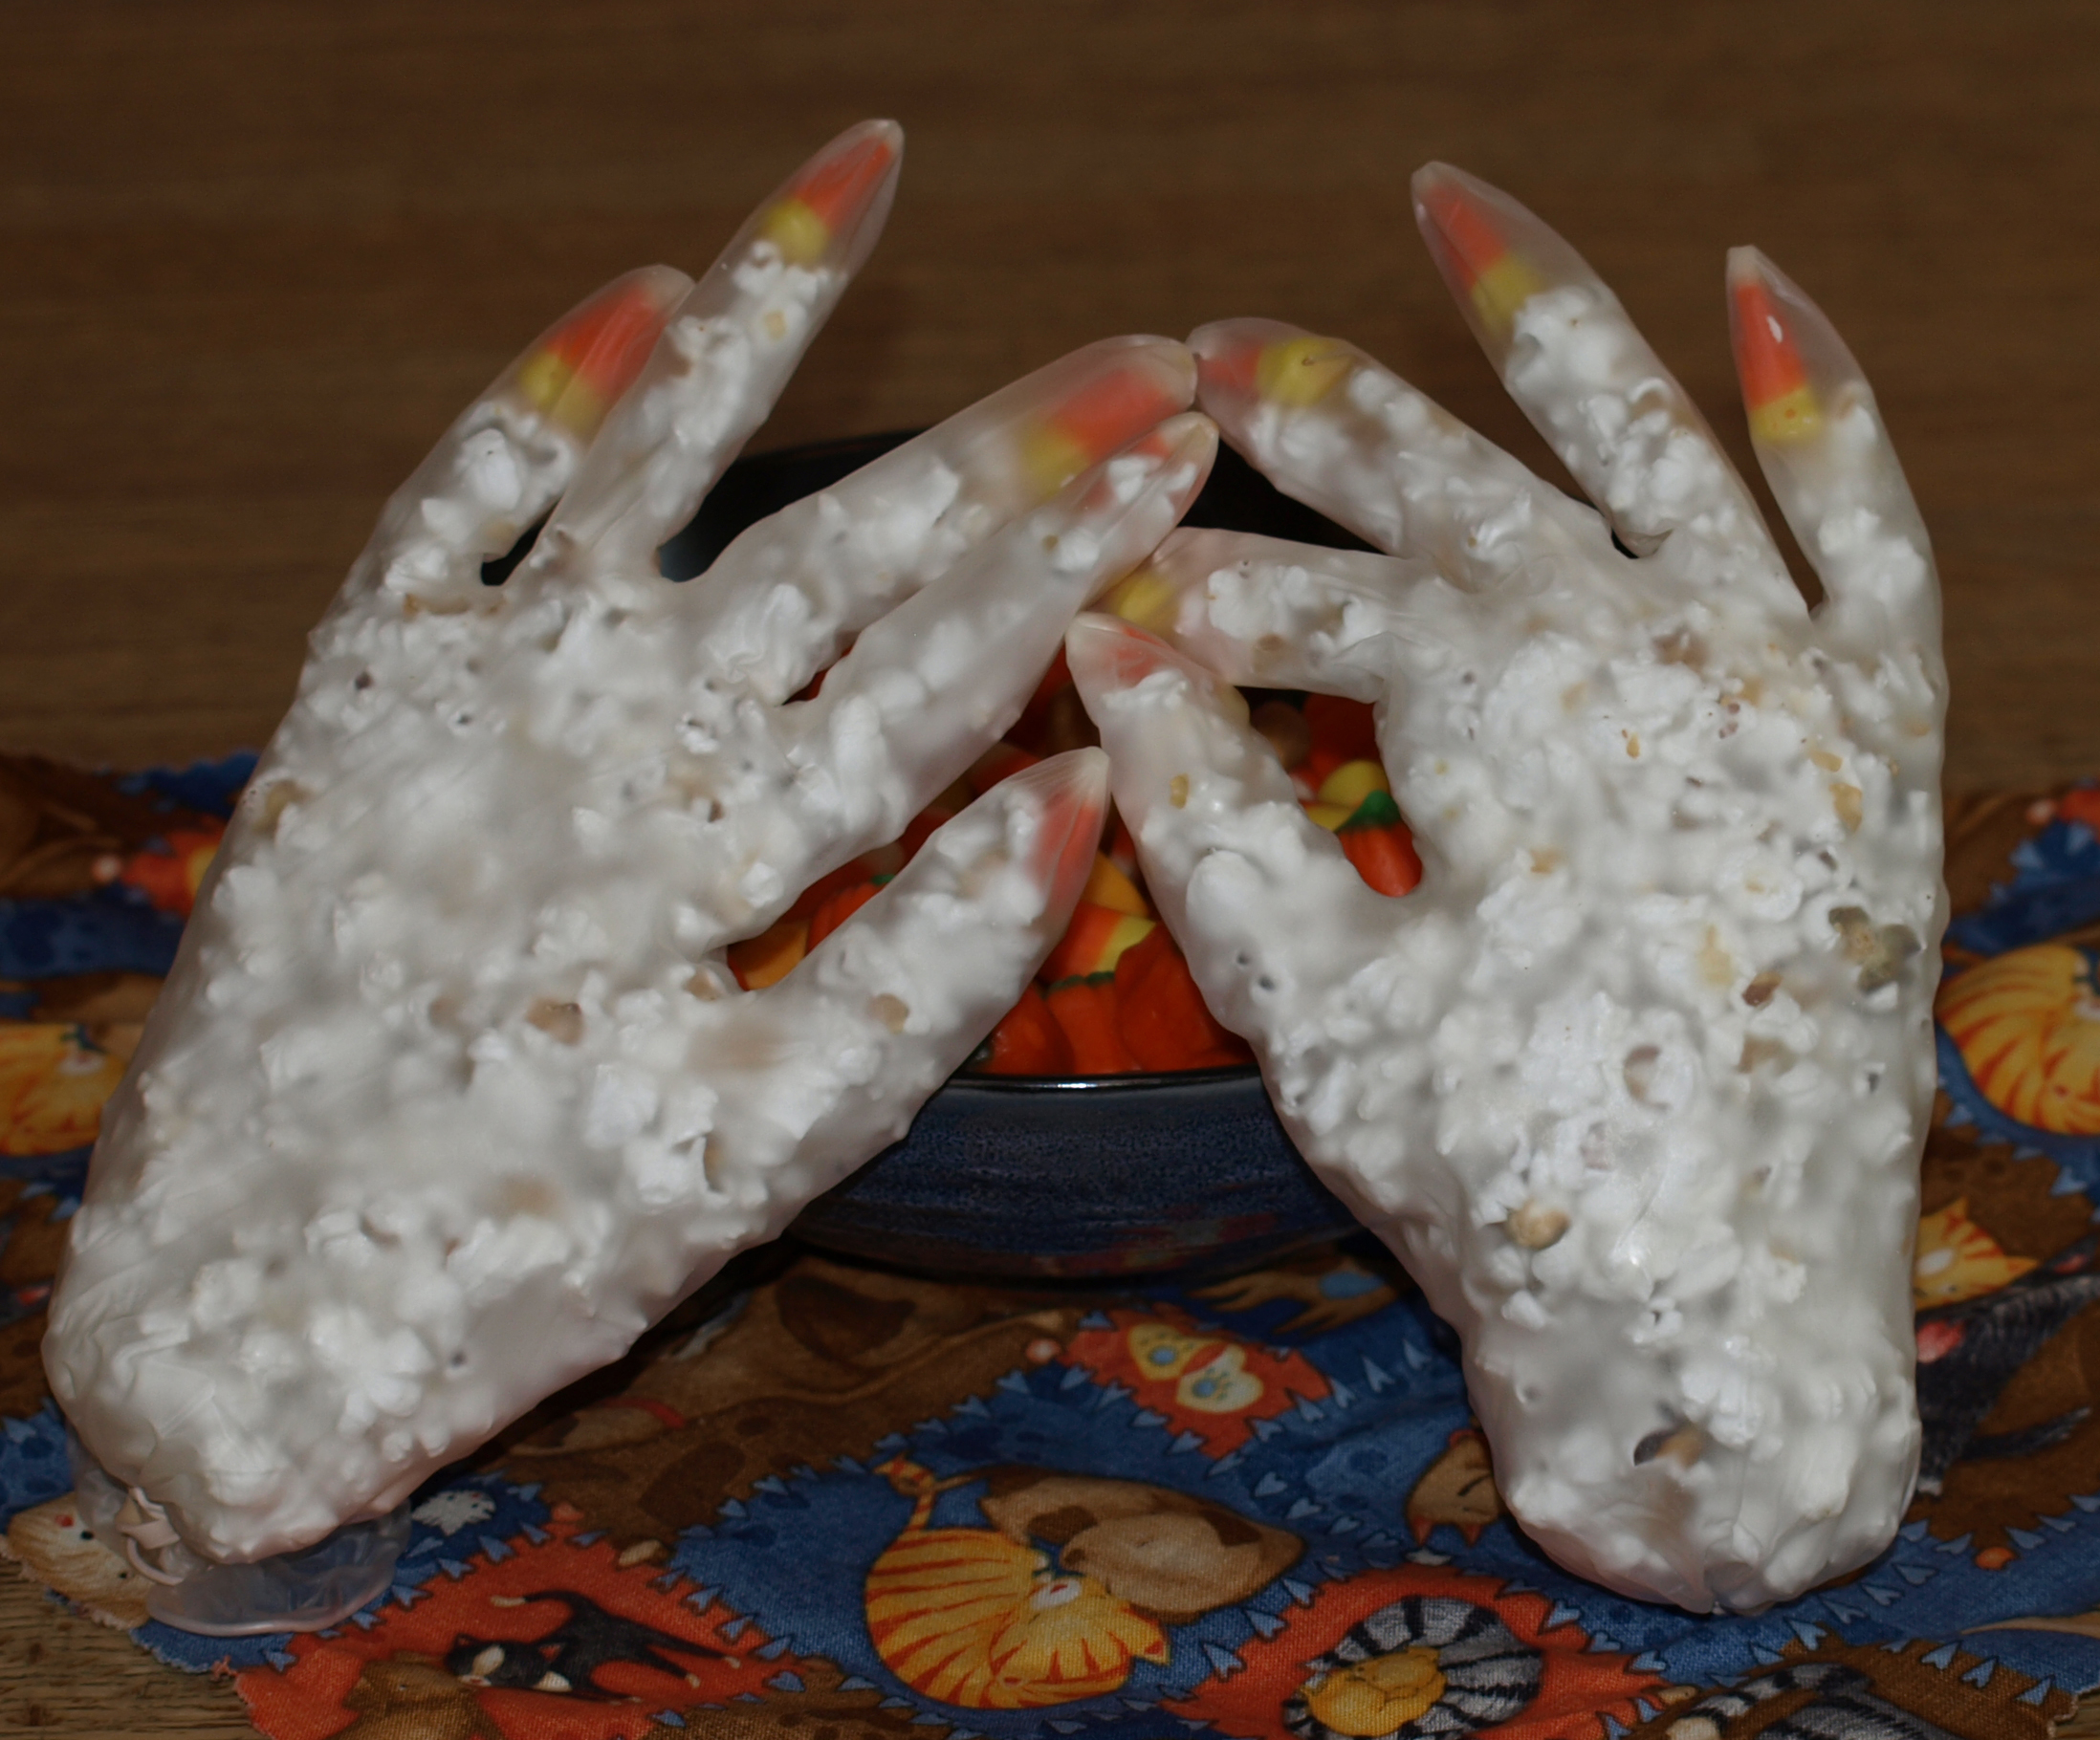 Halloween Craft Ideas For Kids 2nd Grade.Kids Halloween Party Ideas Skeleton Hands Daily Party Dish